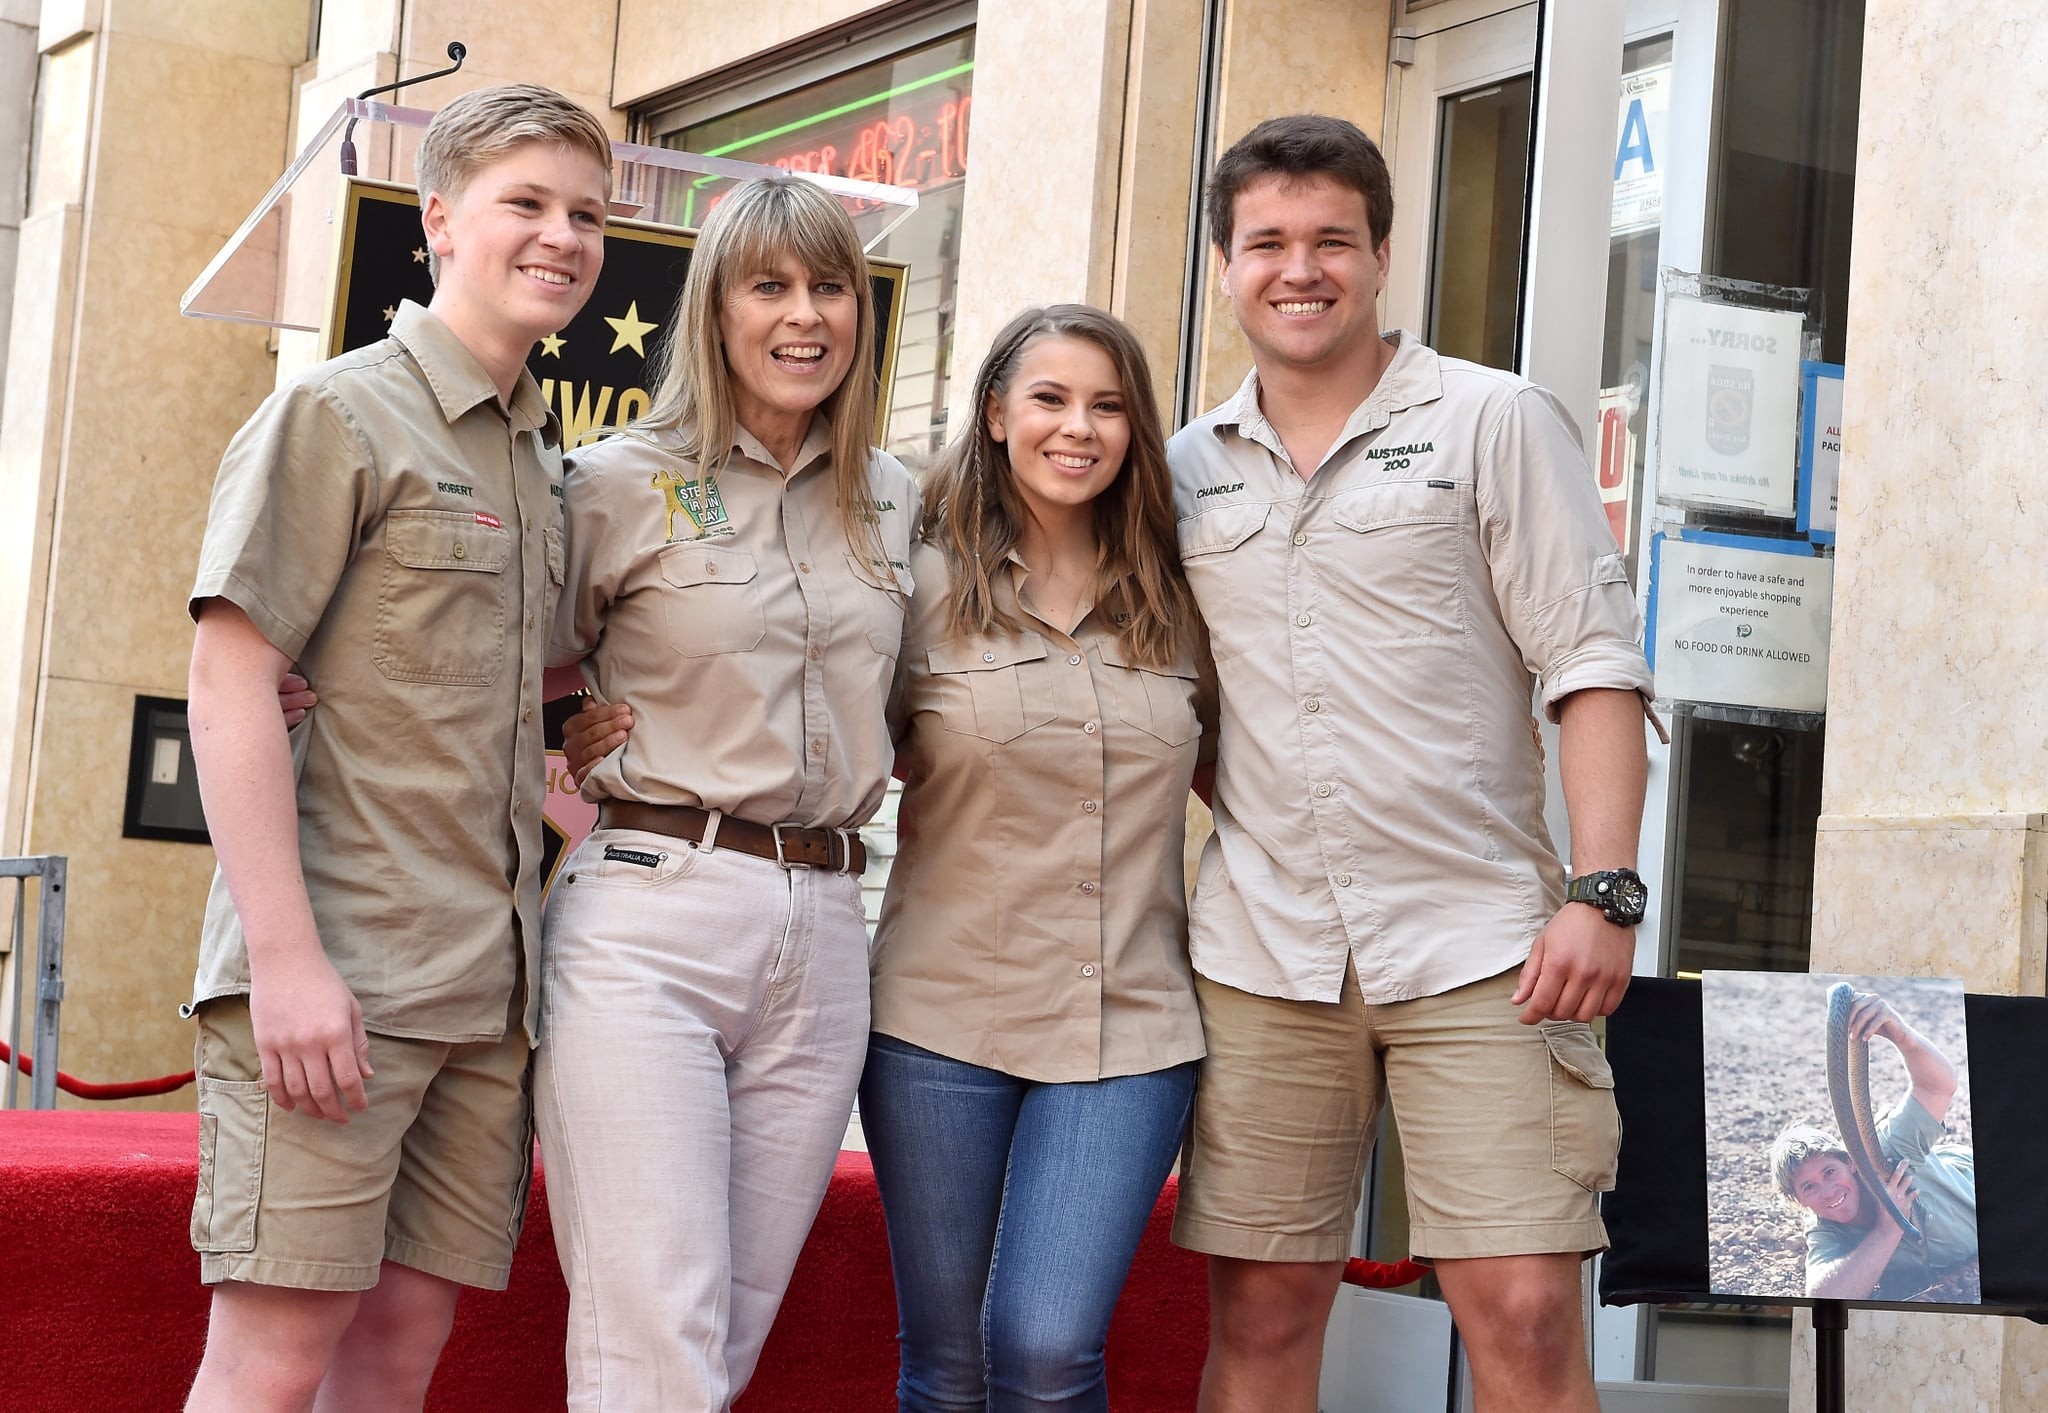 HOLLYWOOD, CA - APRIL 26:  (L-R) Robert Irwin, Terri Irwin, Bindi Irwin and Chandler Powell attend the ceremony honoring Steve Irwin with star on the Hollywood Walk of Fame on April 26, 2018 in Hollywood, California.  (Photo by Axelle/Bauer-Griffin/FilmMagic)